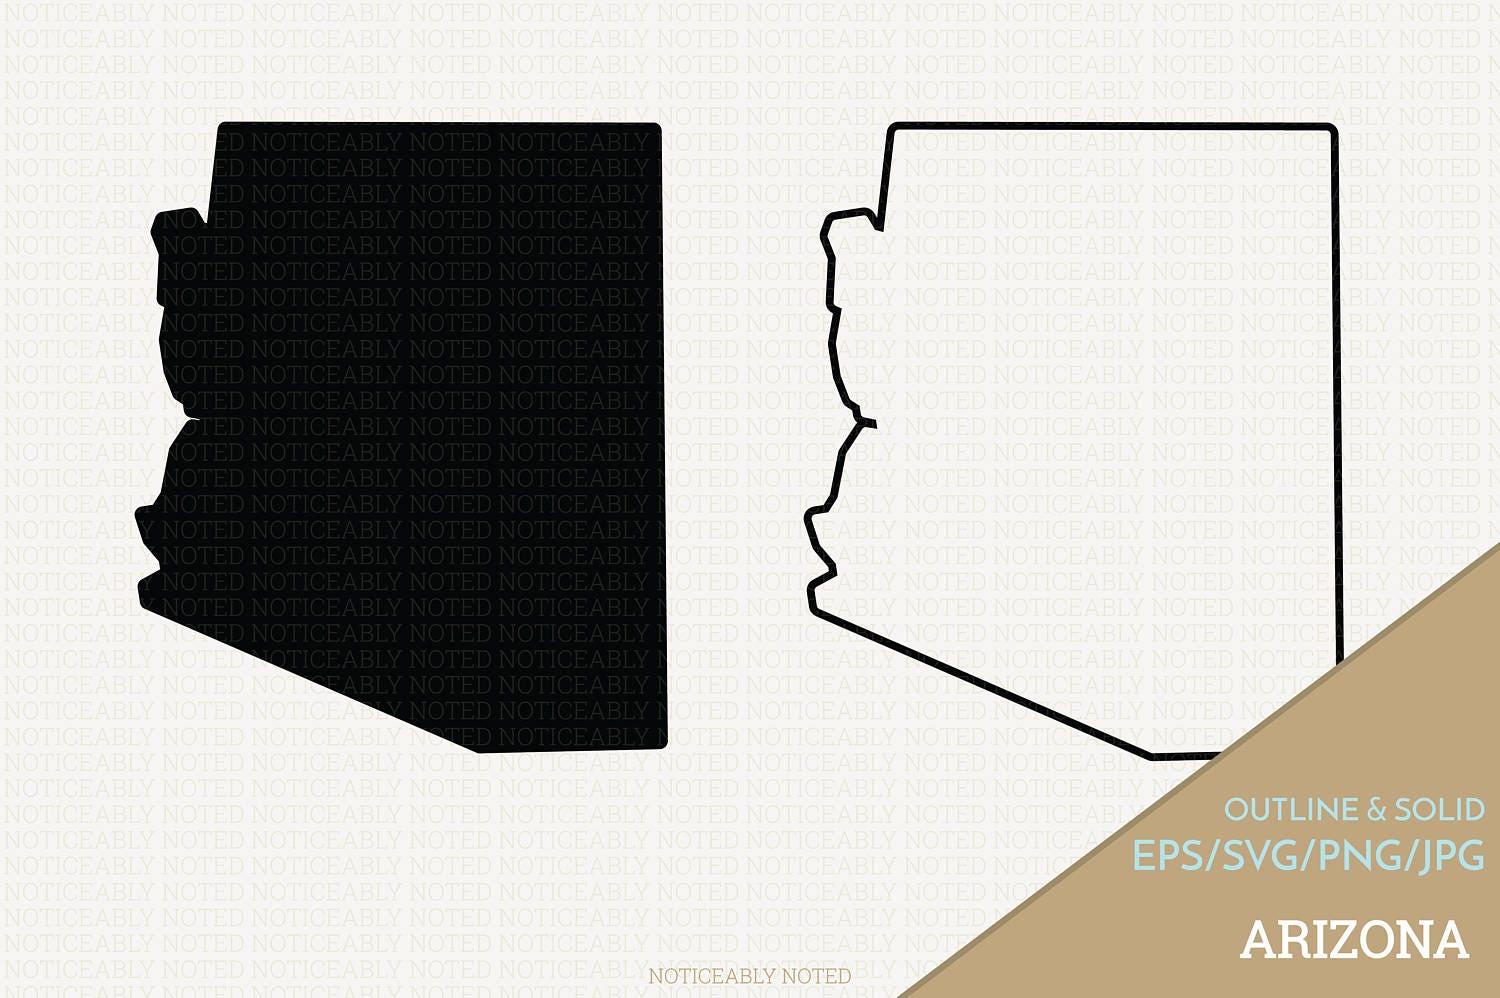 arizona vector state clipart az clip art arizona svg state png rh etsystudio com arizona state clipart arizona clipart black and white